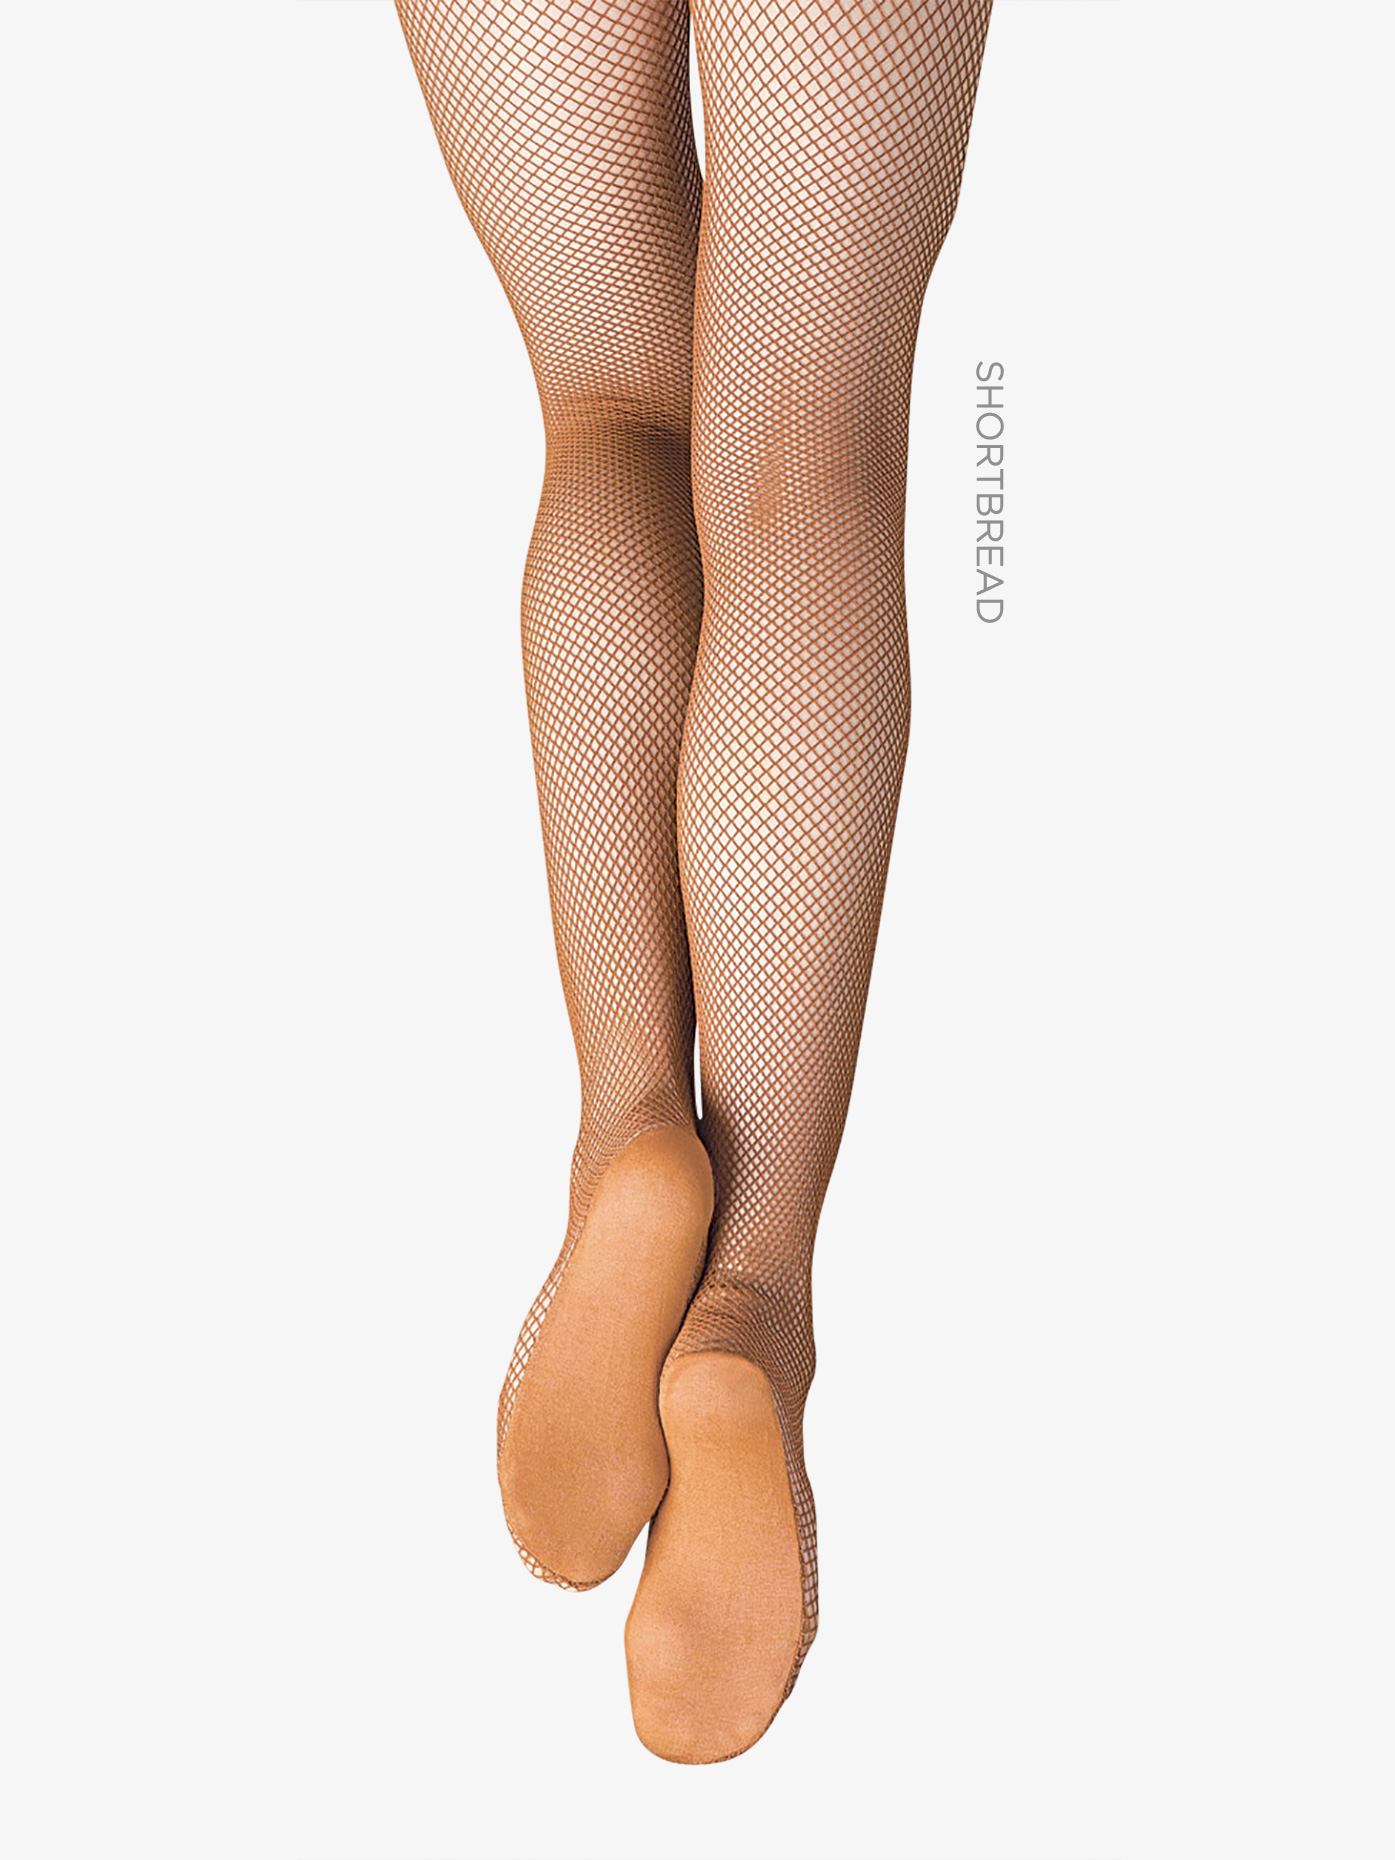 Capezio Adult Professional Seamless Fishnet Tights 3000